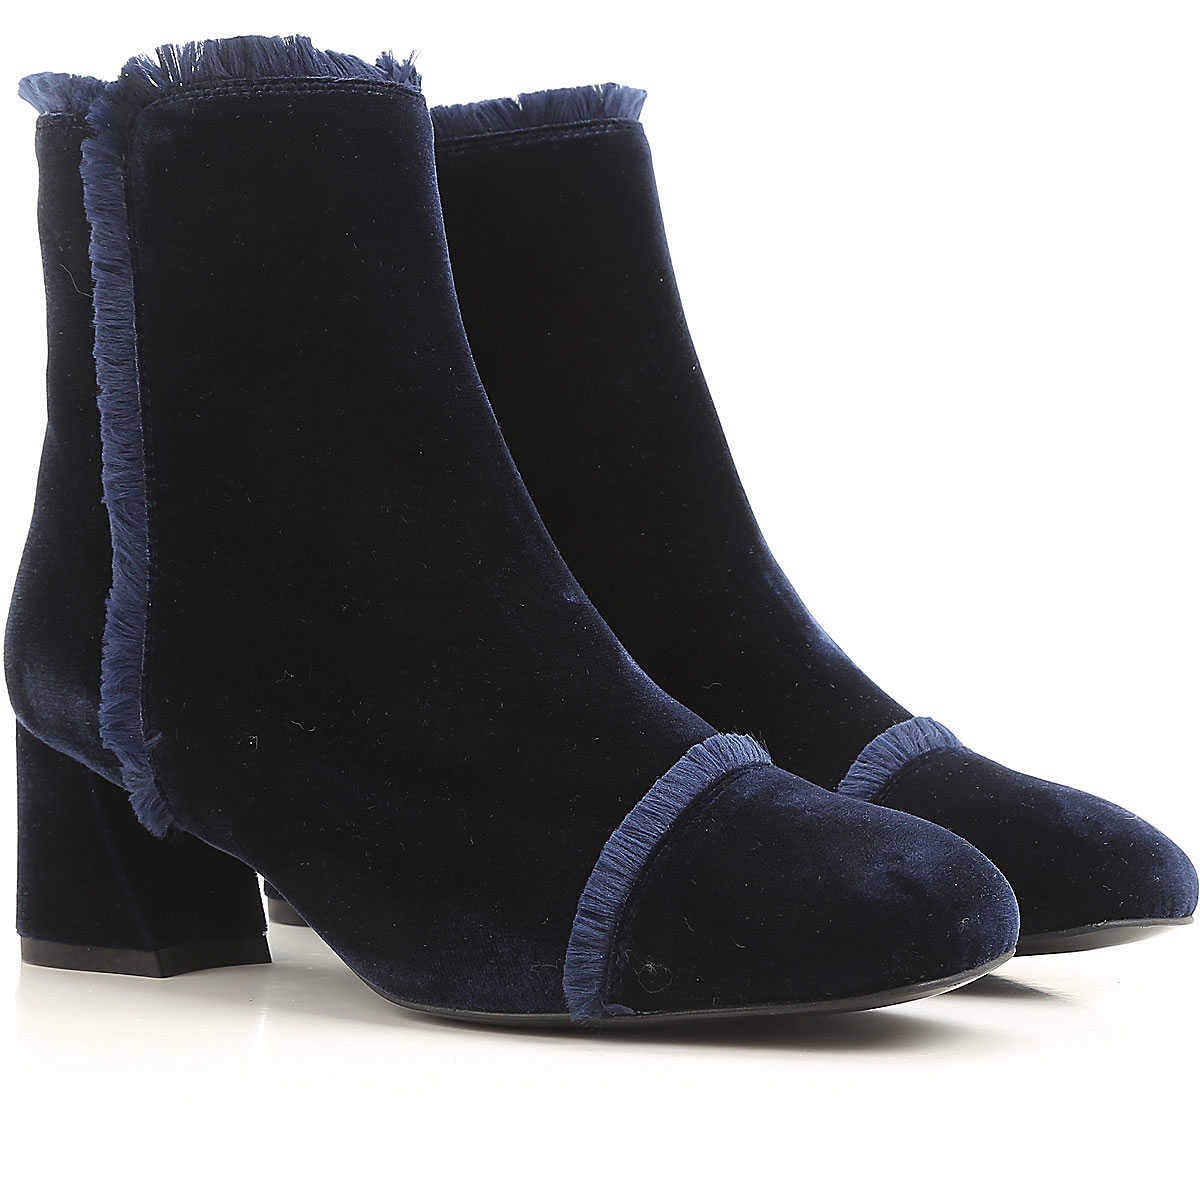 Stuart Weitzman Boots for Women Booties On Sale in Outlet DK - GOOFASH - Womens BOOTS